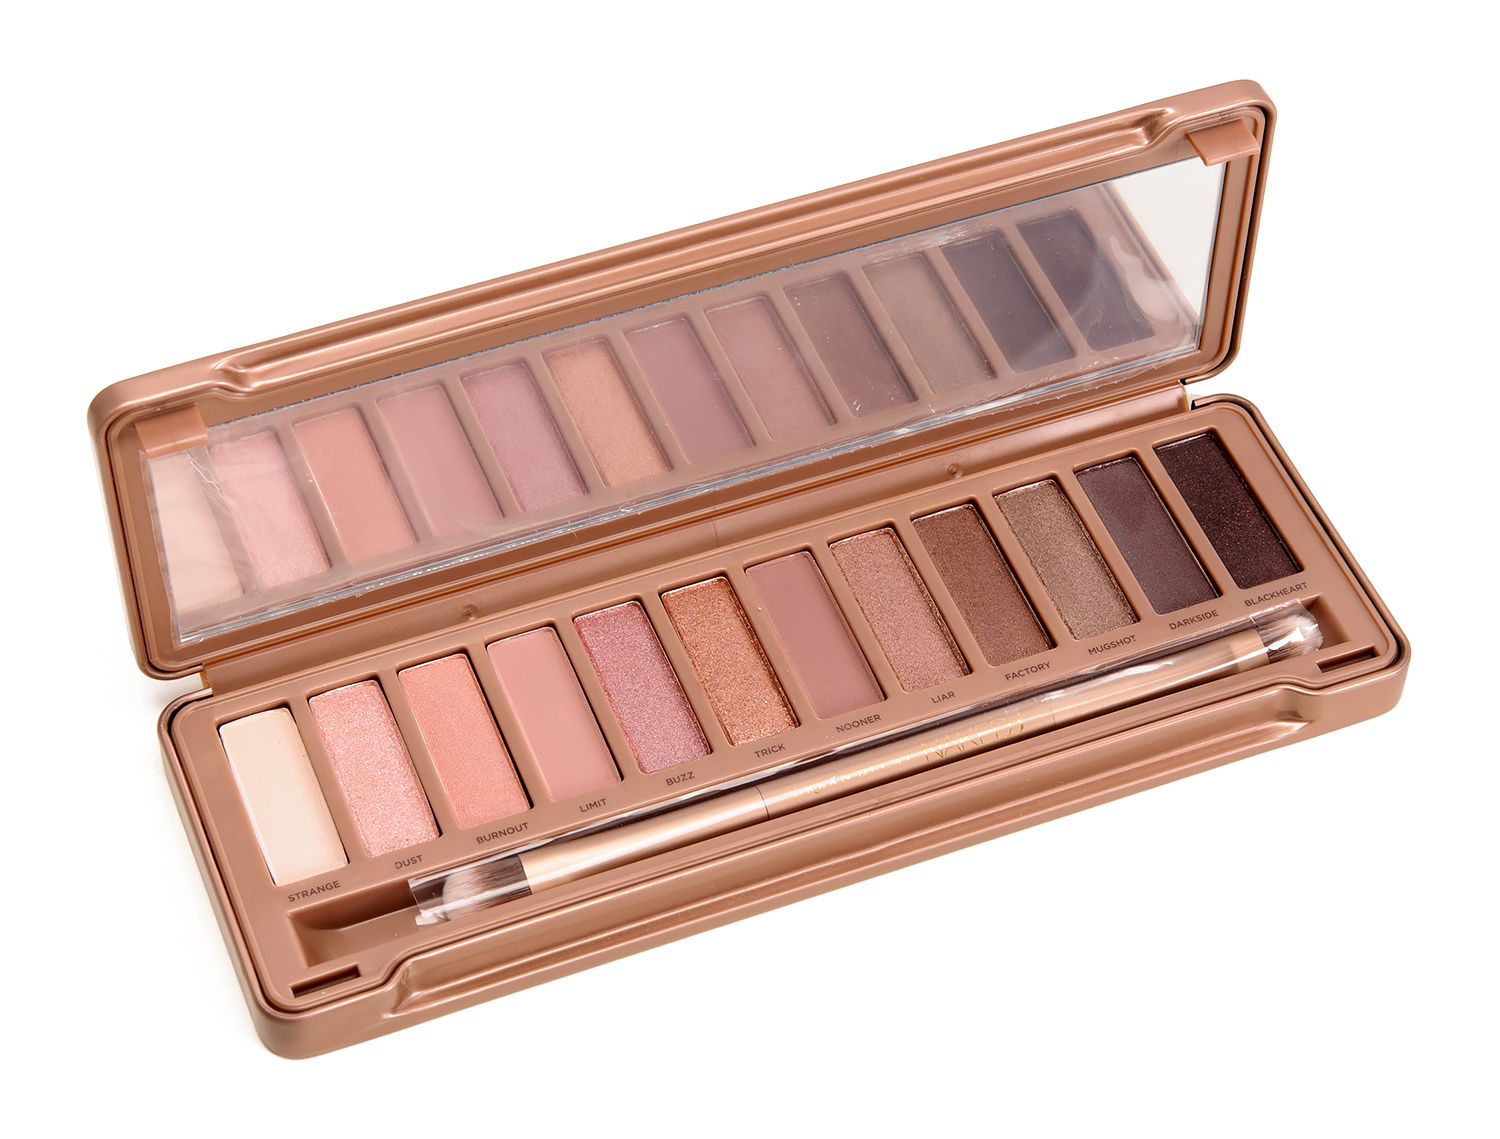 Urban Decay Naked3 Eyeshadow Palette Review, Photos, Swatches